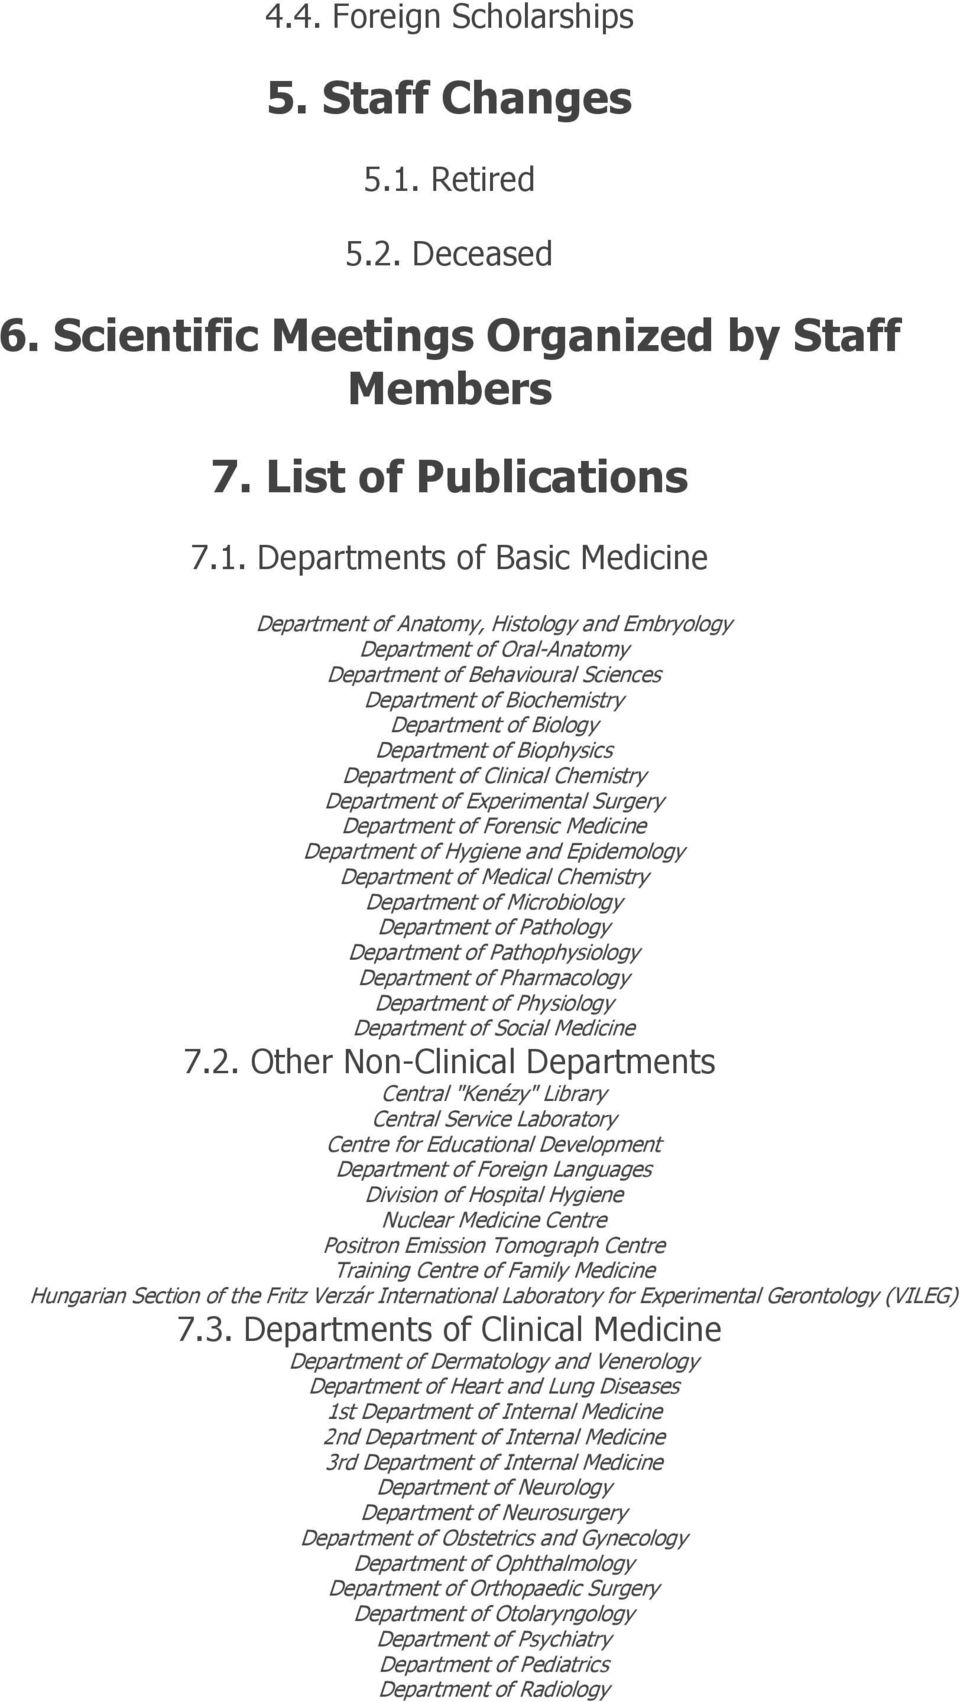 Departments of Basic Medicine Department of Anatomy, Histology and Embryology Department of Oral-Anatomy Department of Behavioural Sciences Department of Biochemistry Department of Biology Department